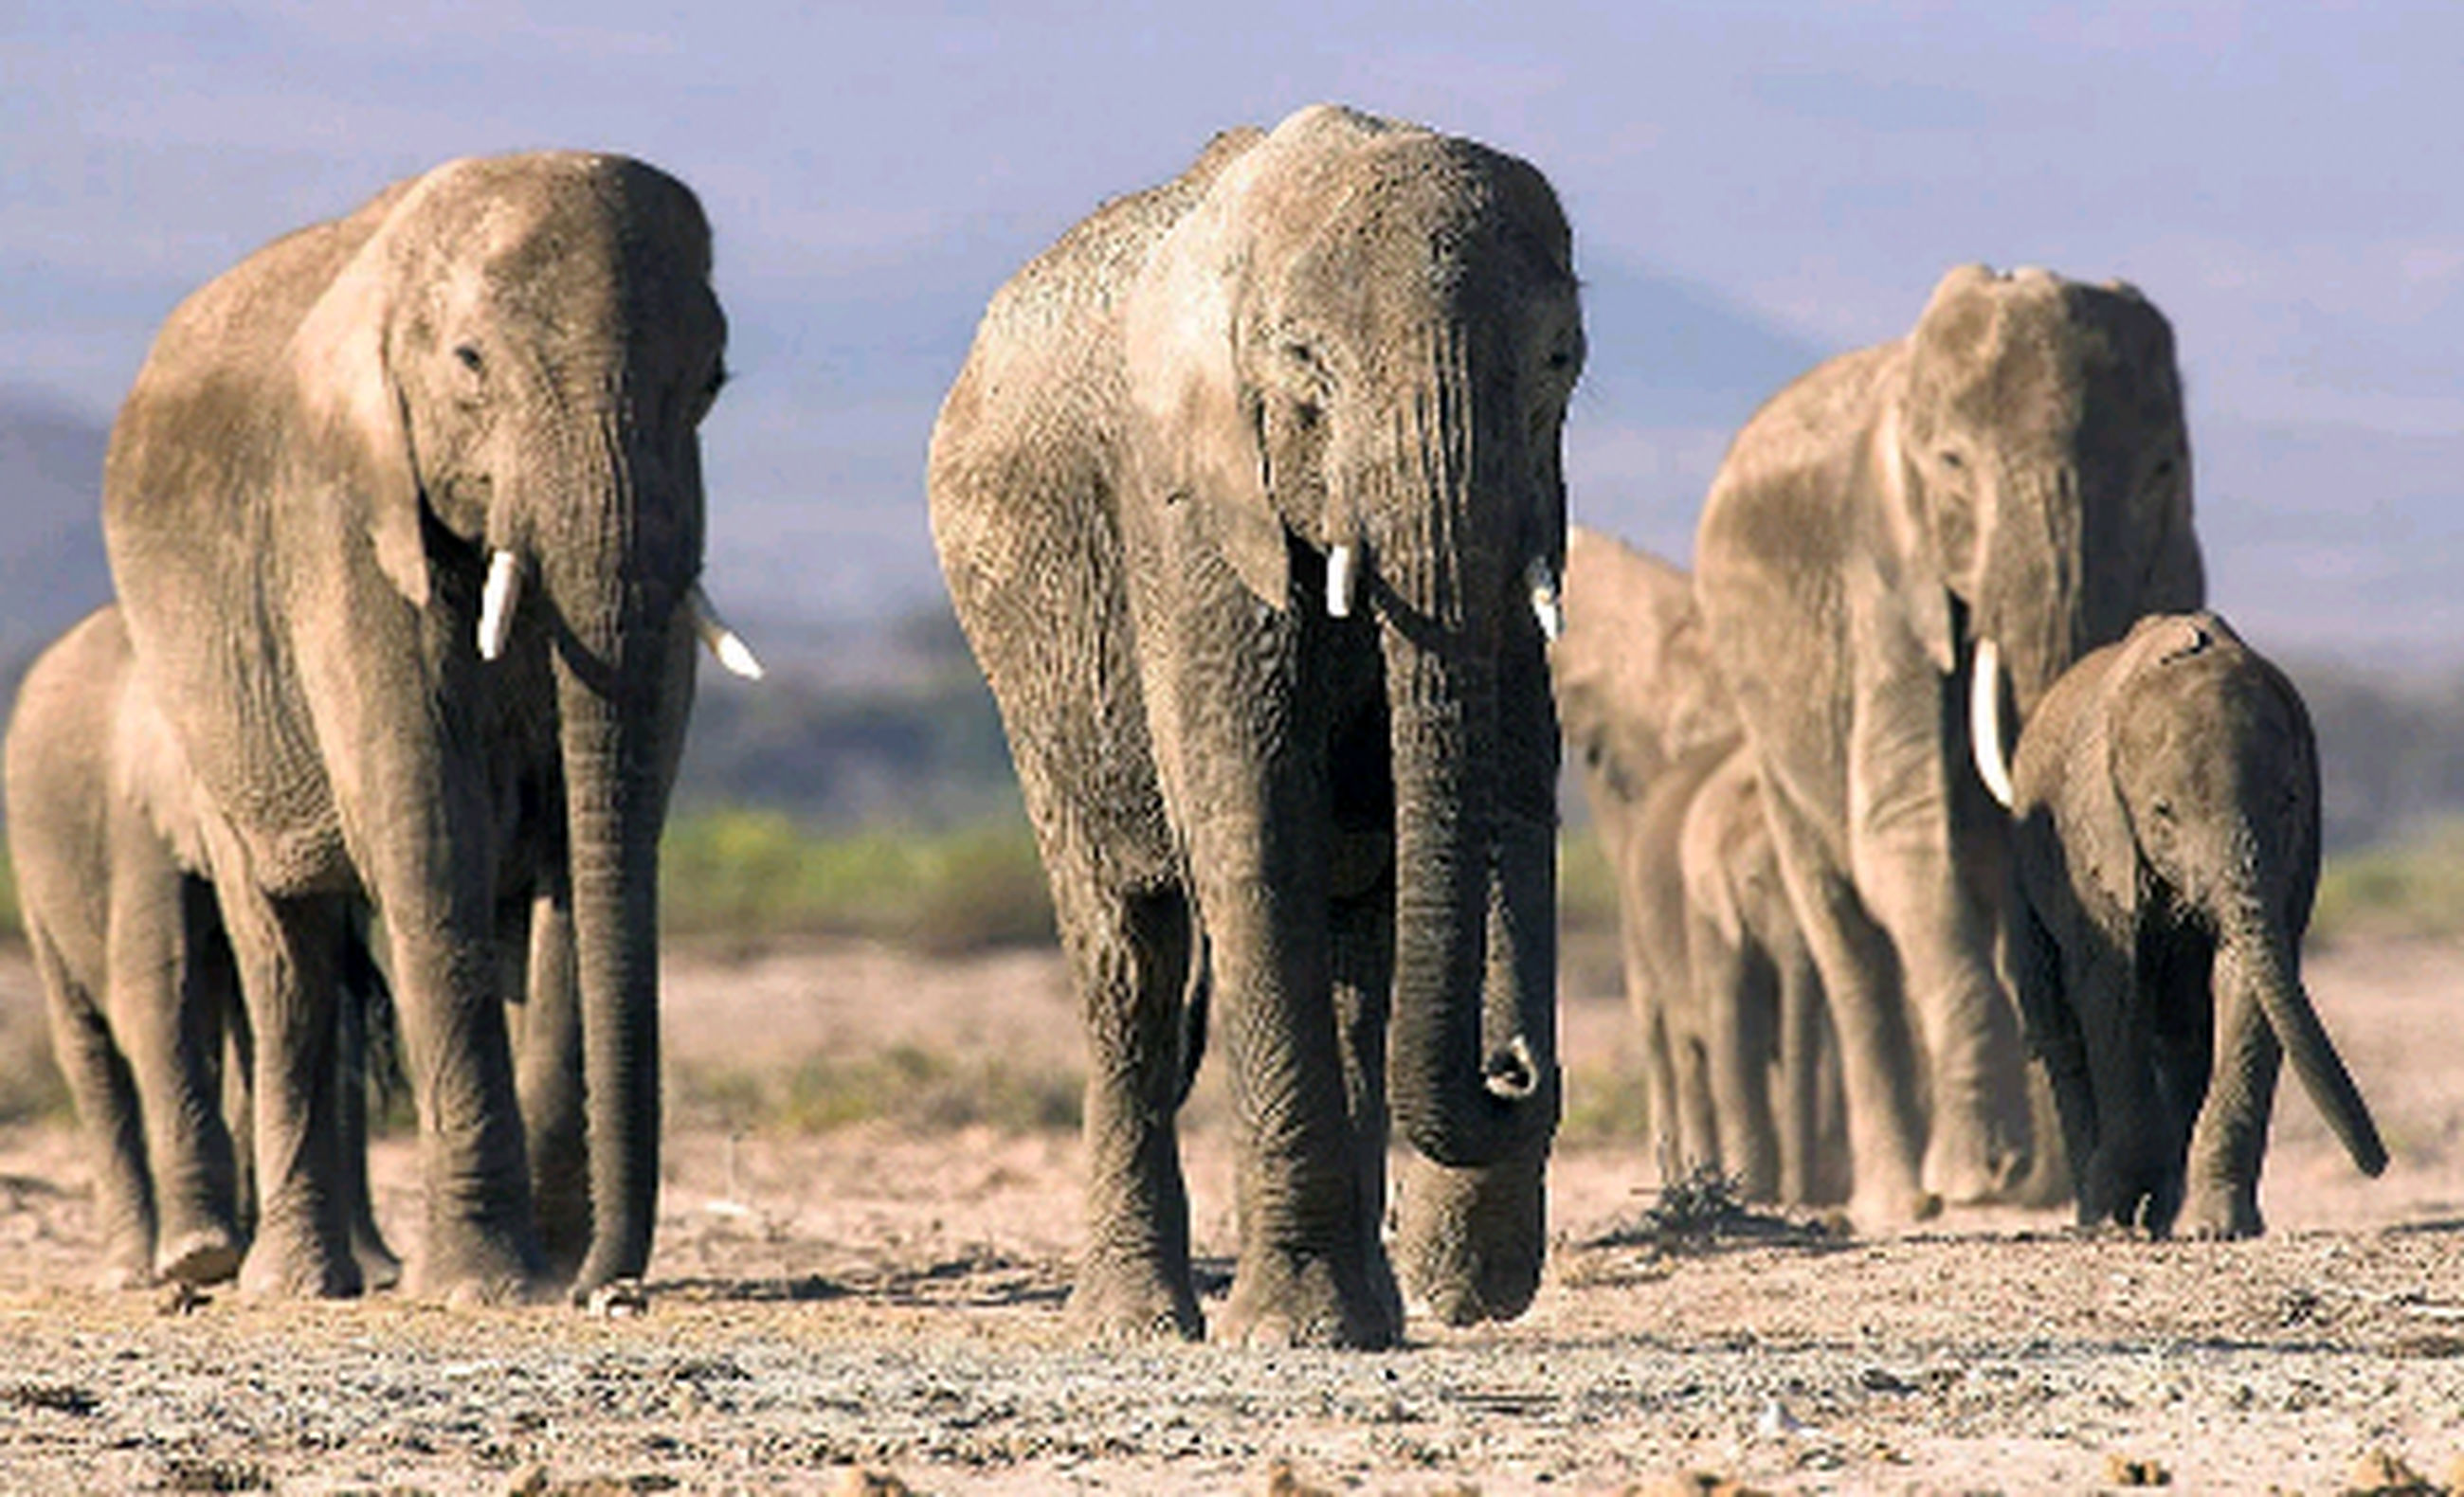 elephant, animal wildlife, mammal, animal, togetherness, animals in the wild, elephant calf, herd, animal themes, group of animals, no people, outdoors, african elephant, day